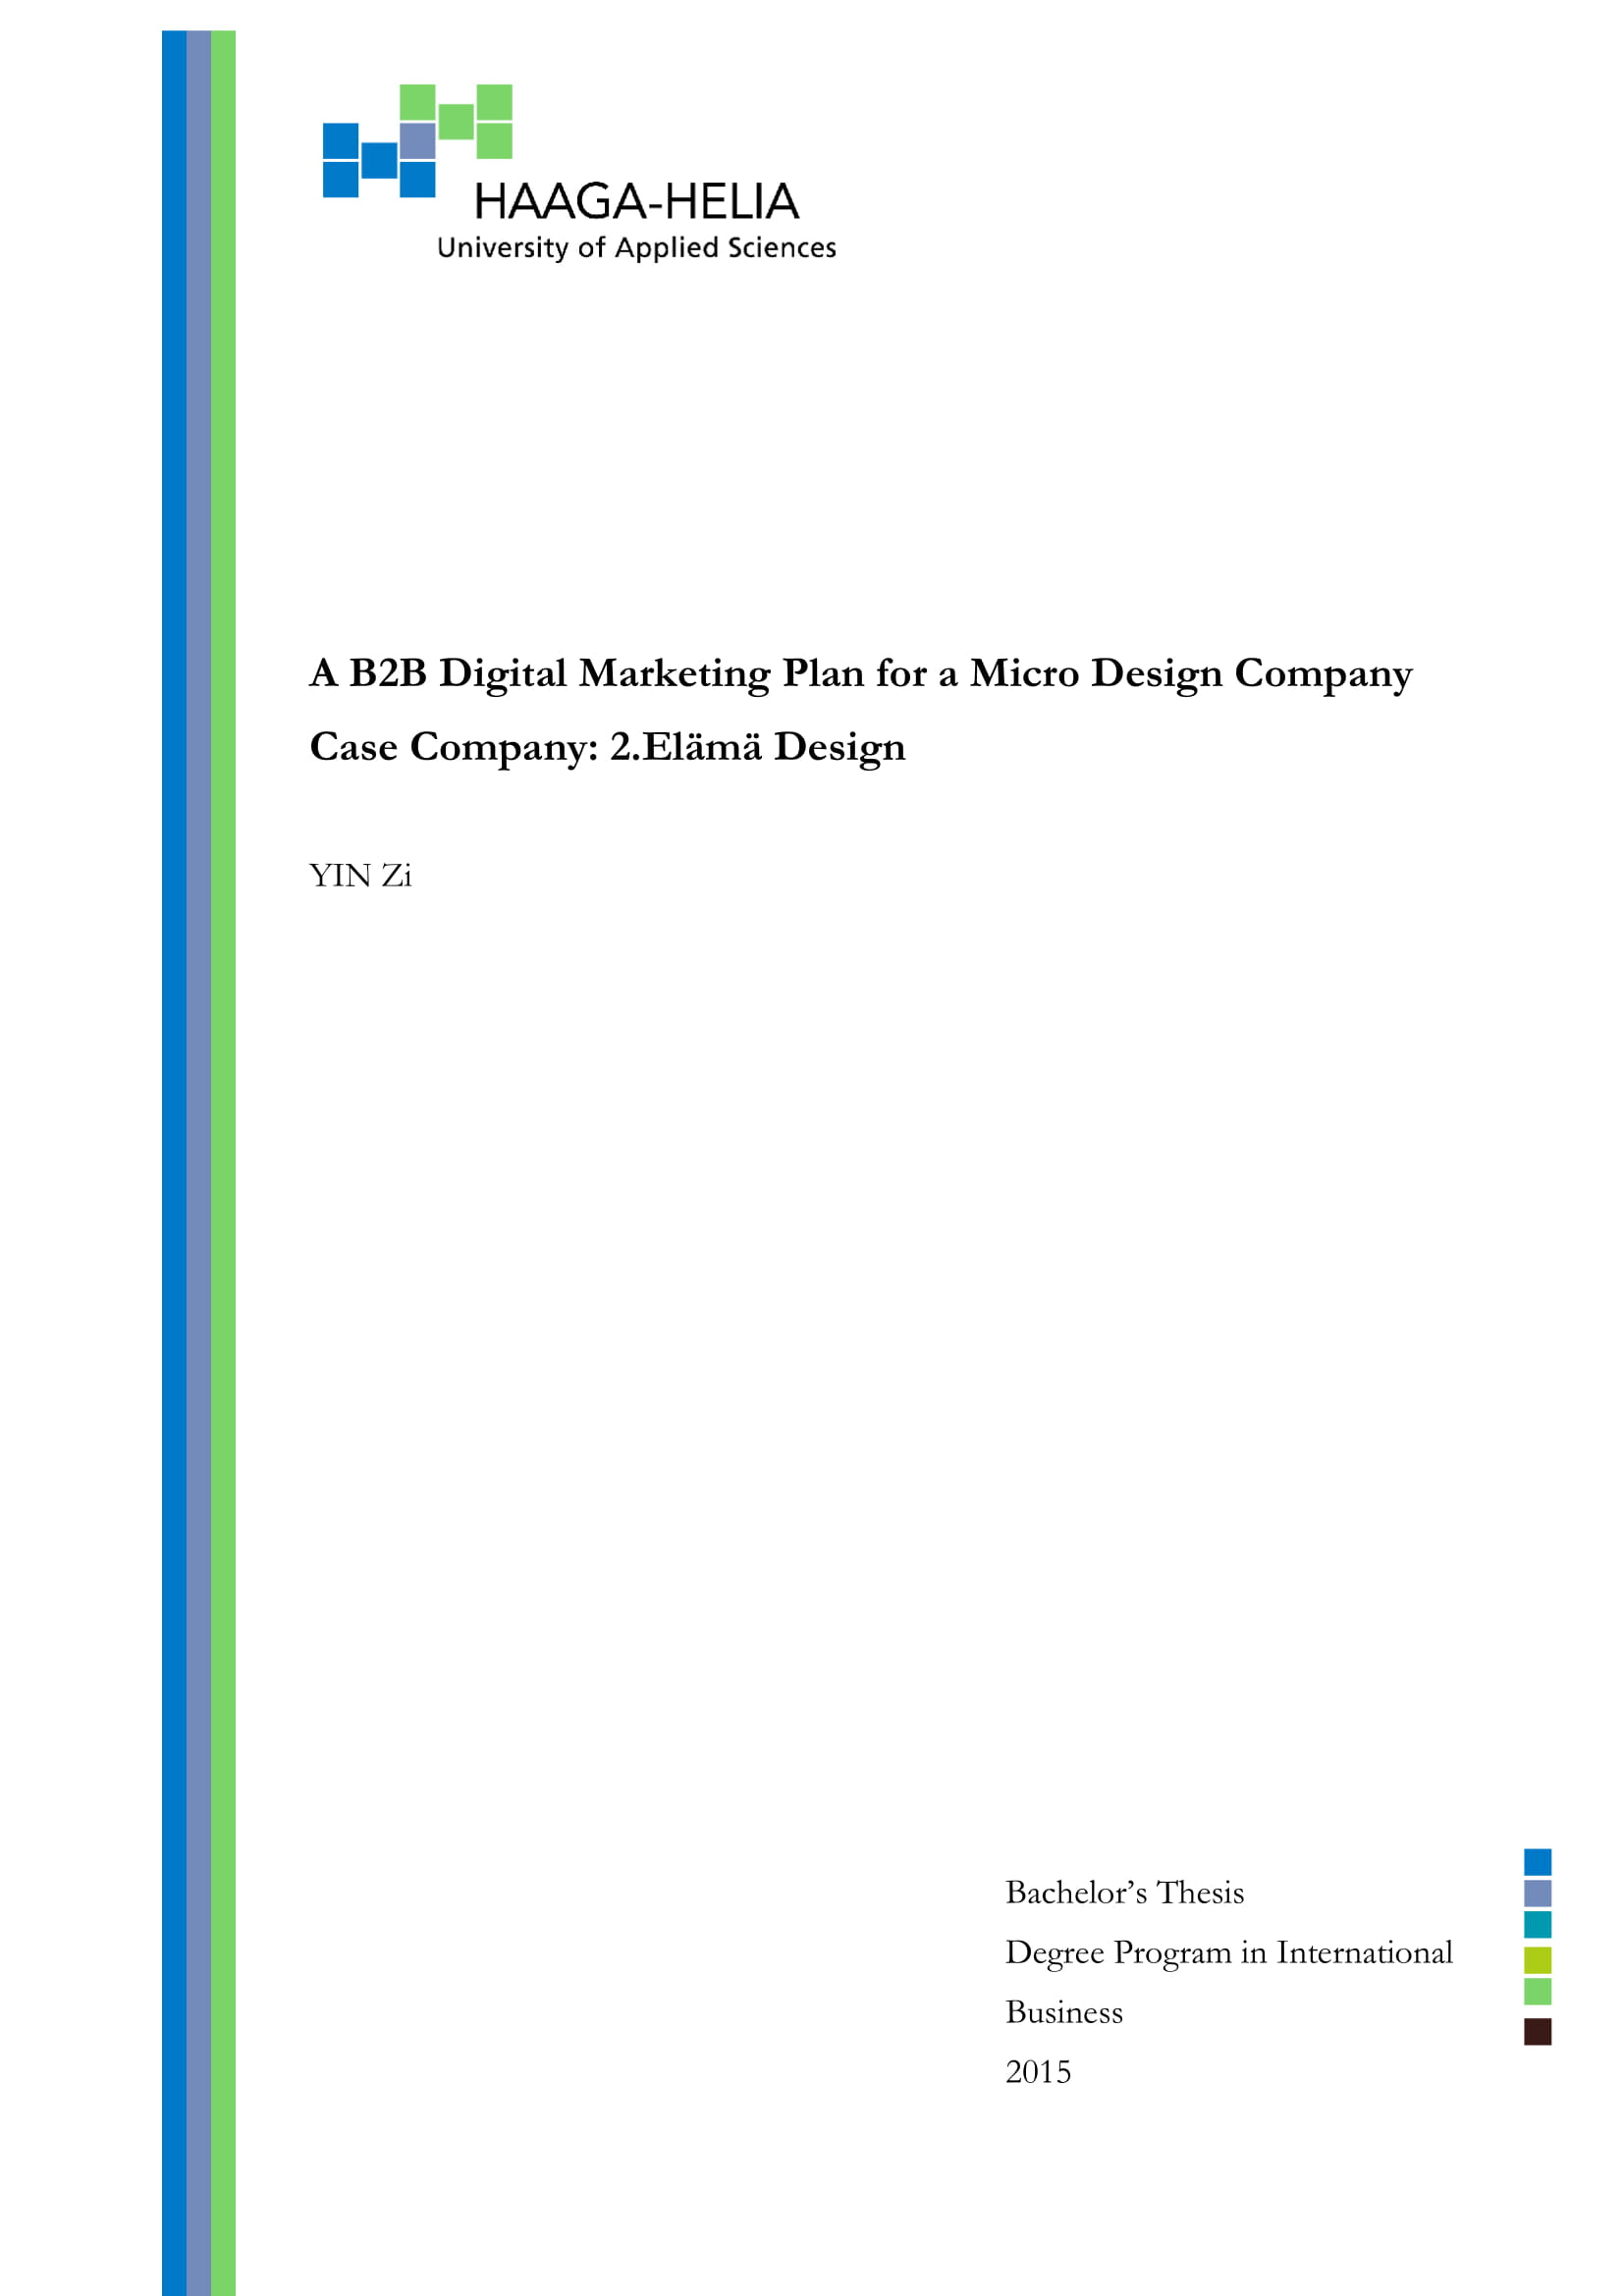 b2b digital marketing plan for a micro design company example 01